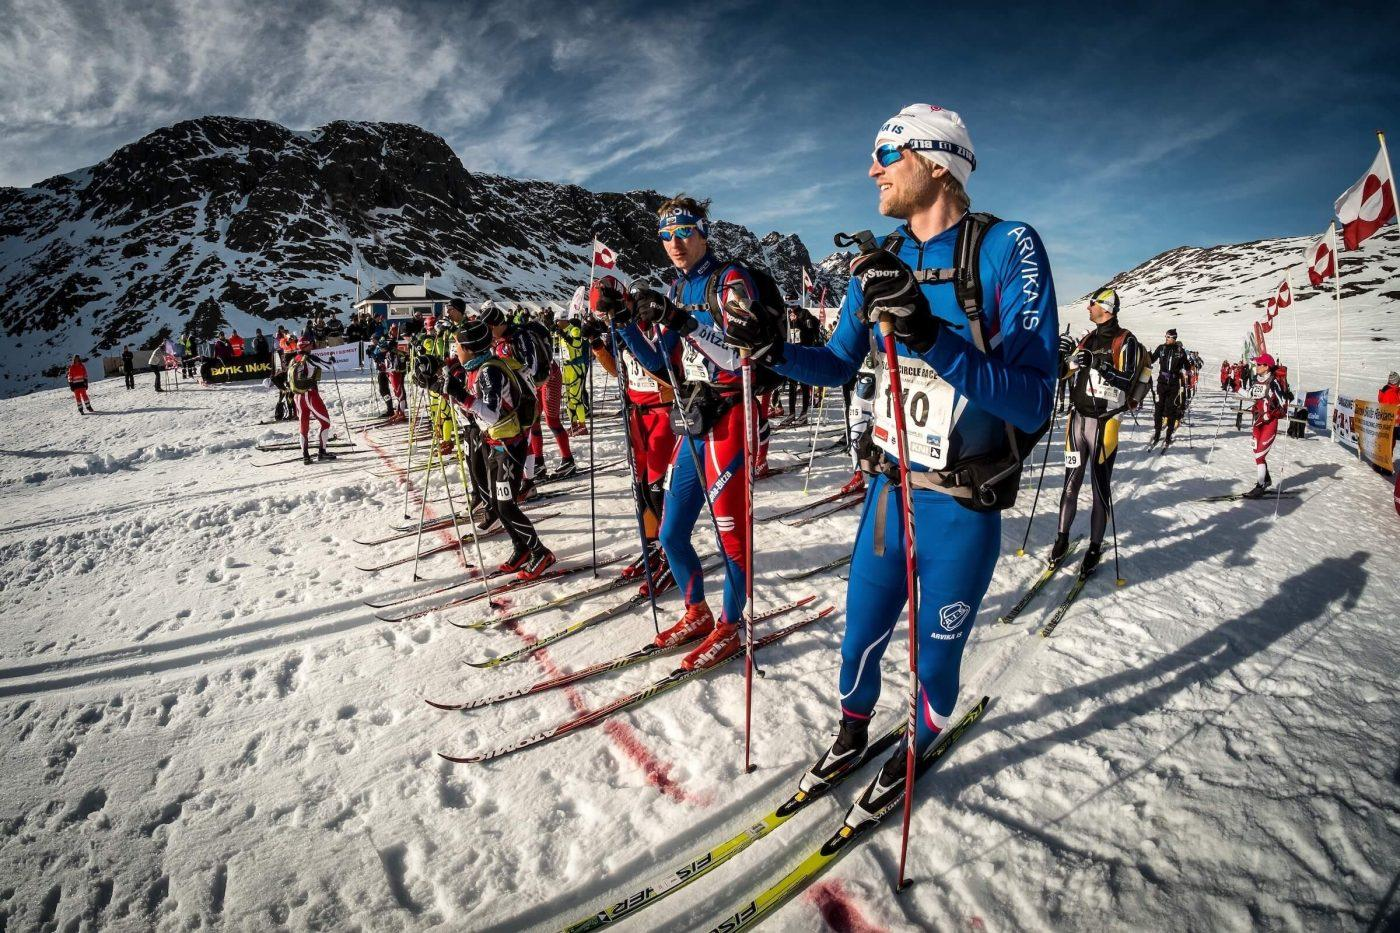 Participating skiers getting ready to start near Sisimiut in Greenland